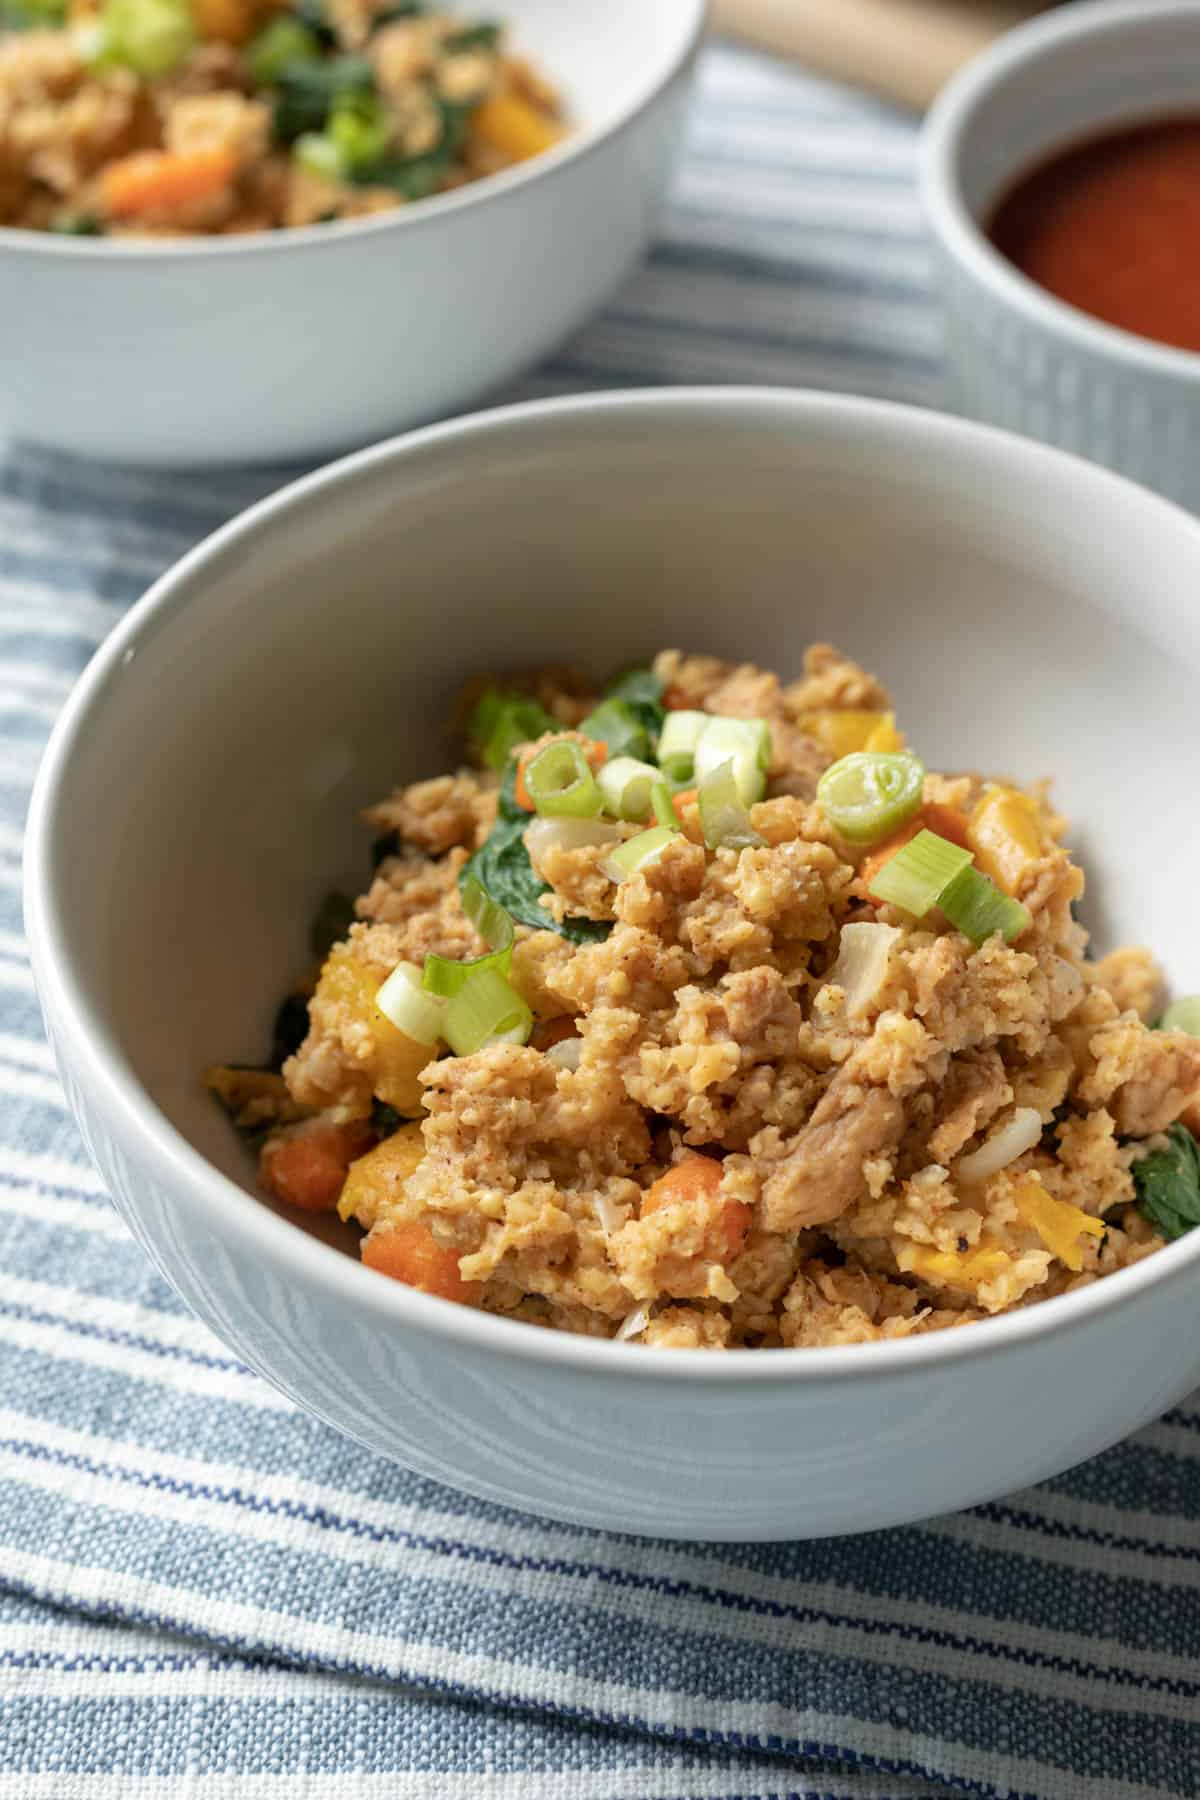 full meal of millet, vegetables, and soy curls in a bowl topped with green onion.